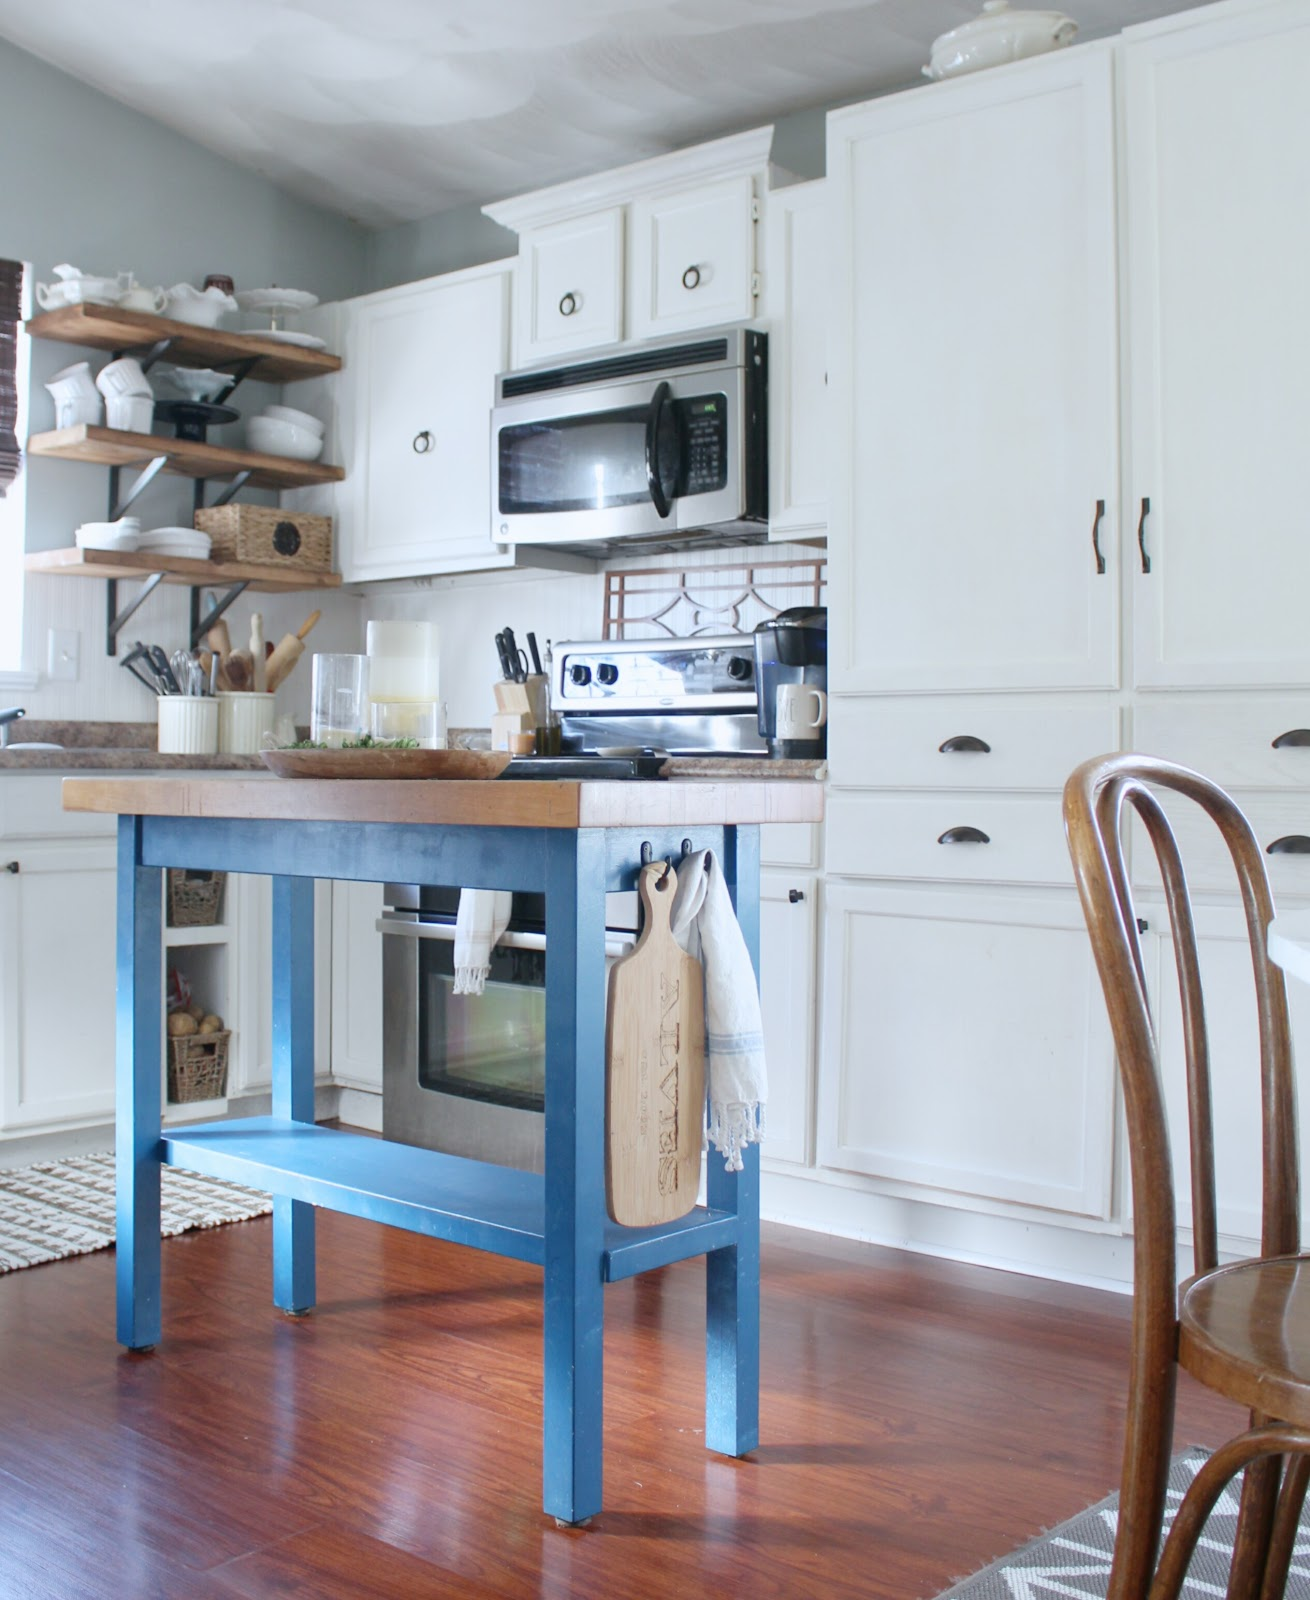 My DIY Kitchen: Adding Inexpensive Storage and Inspiration for My ...